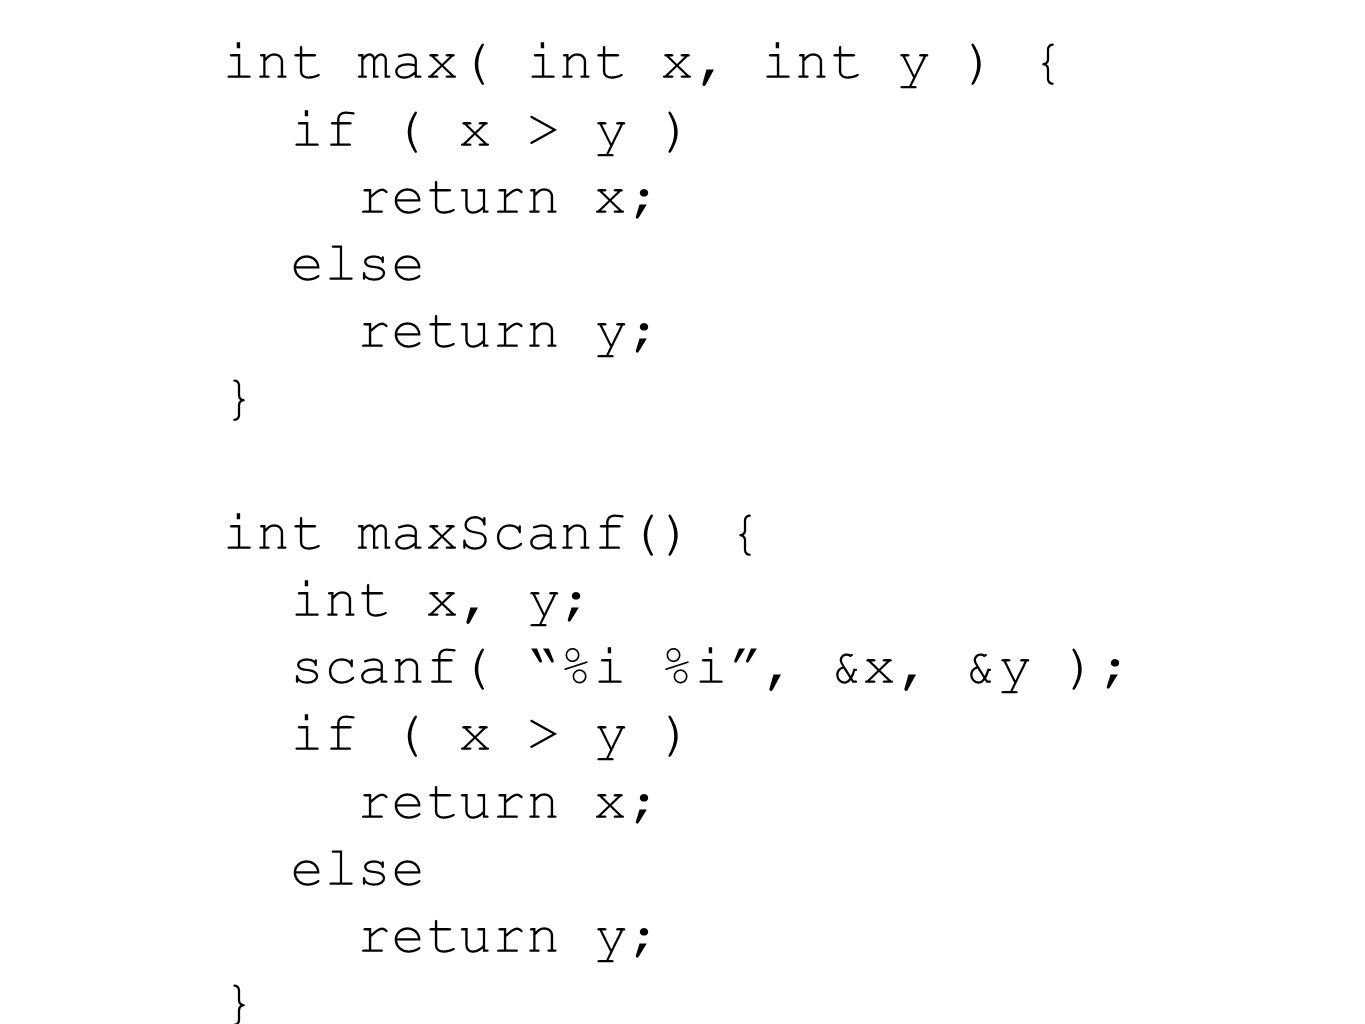 int max( int x, int y ) { if ( x > y ) return x; else return y; } int maxScanf() { int x, y; scanf( %i %i , &x, &y ); if ( x > y ) return x; else return y; }